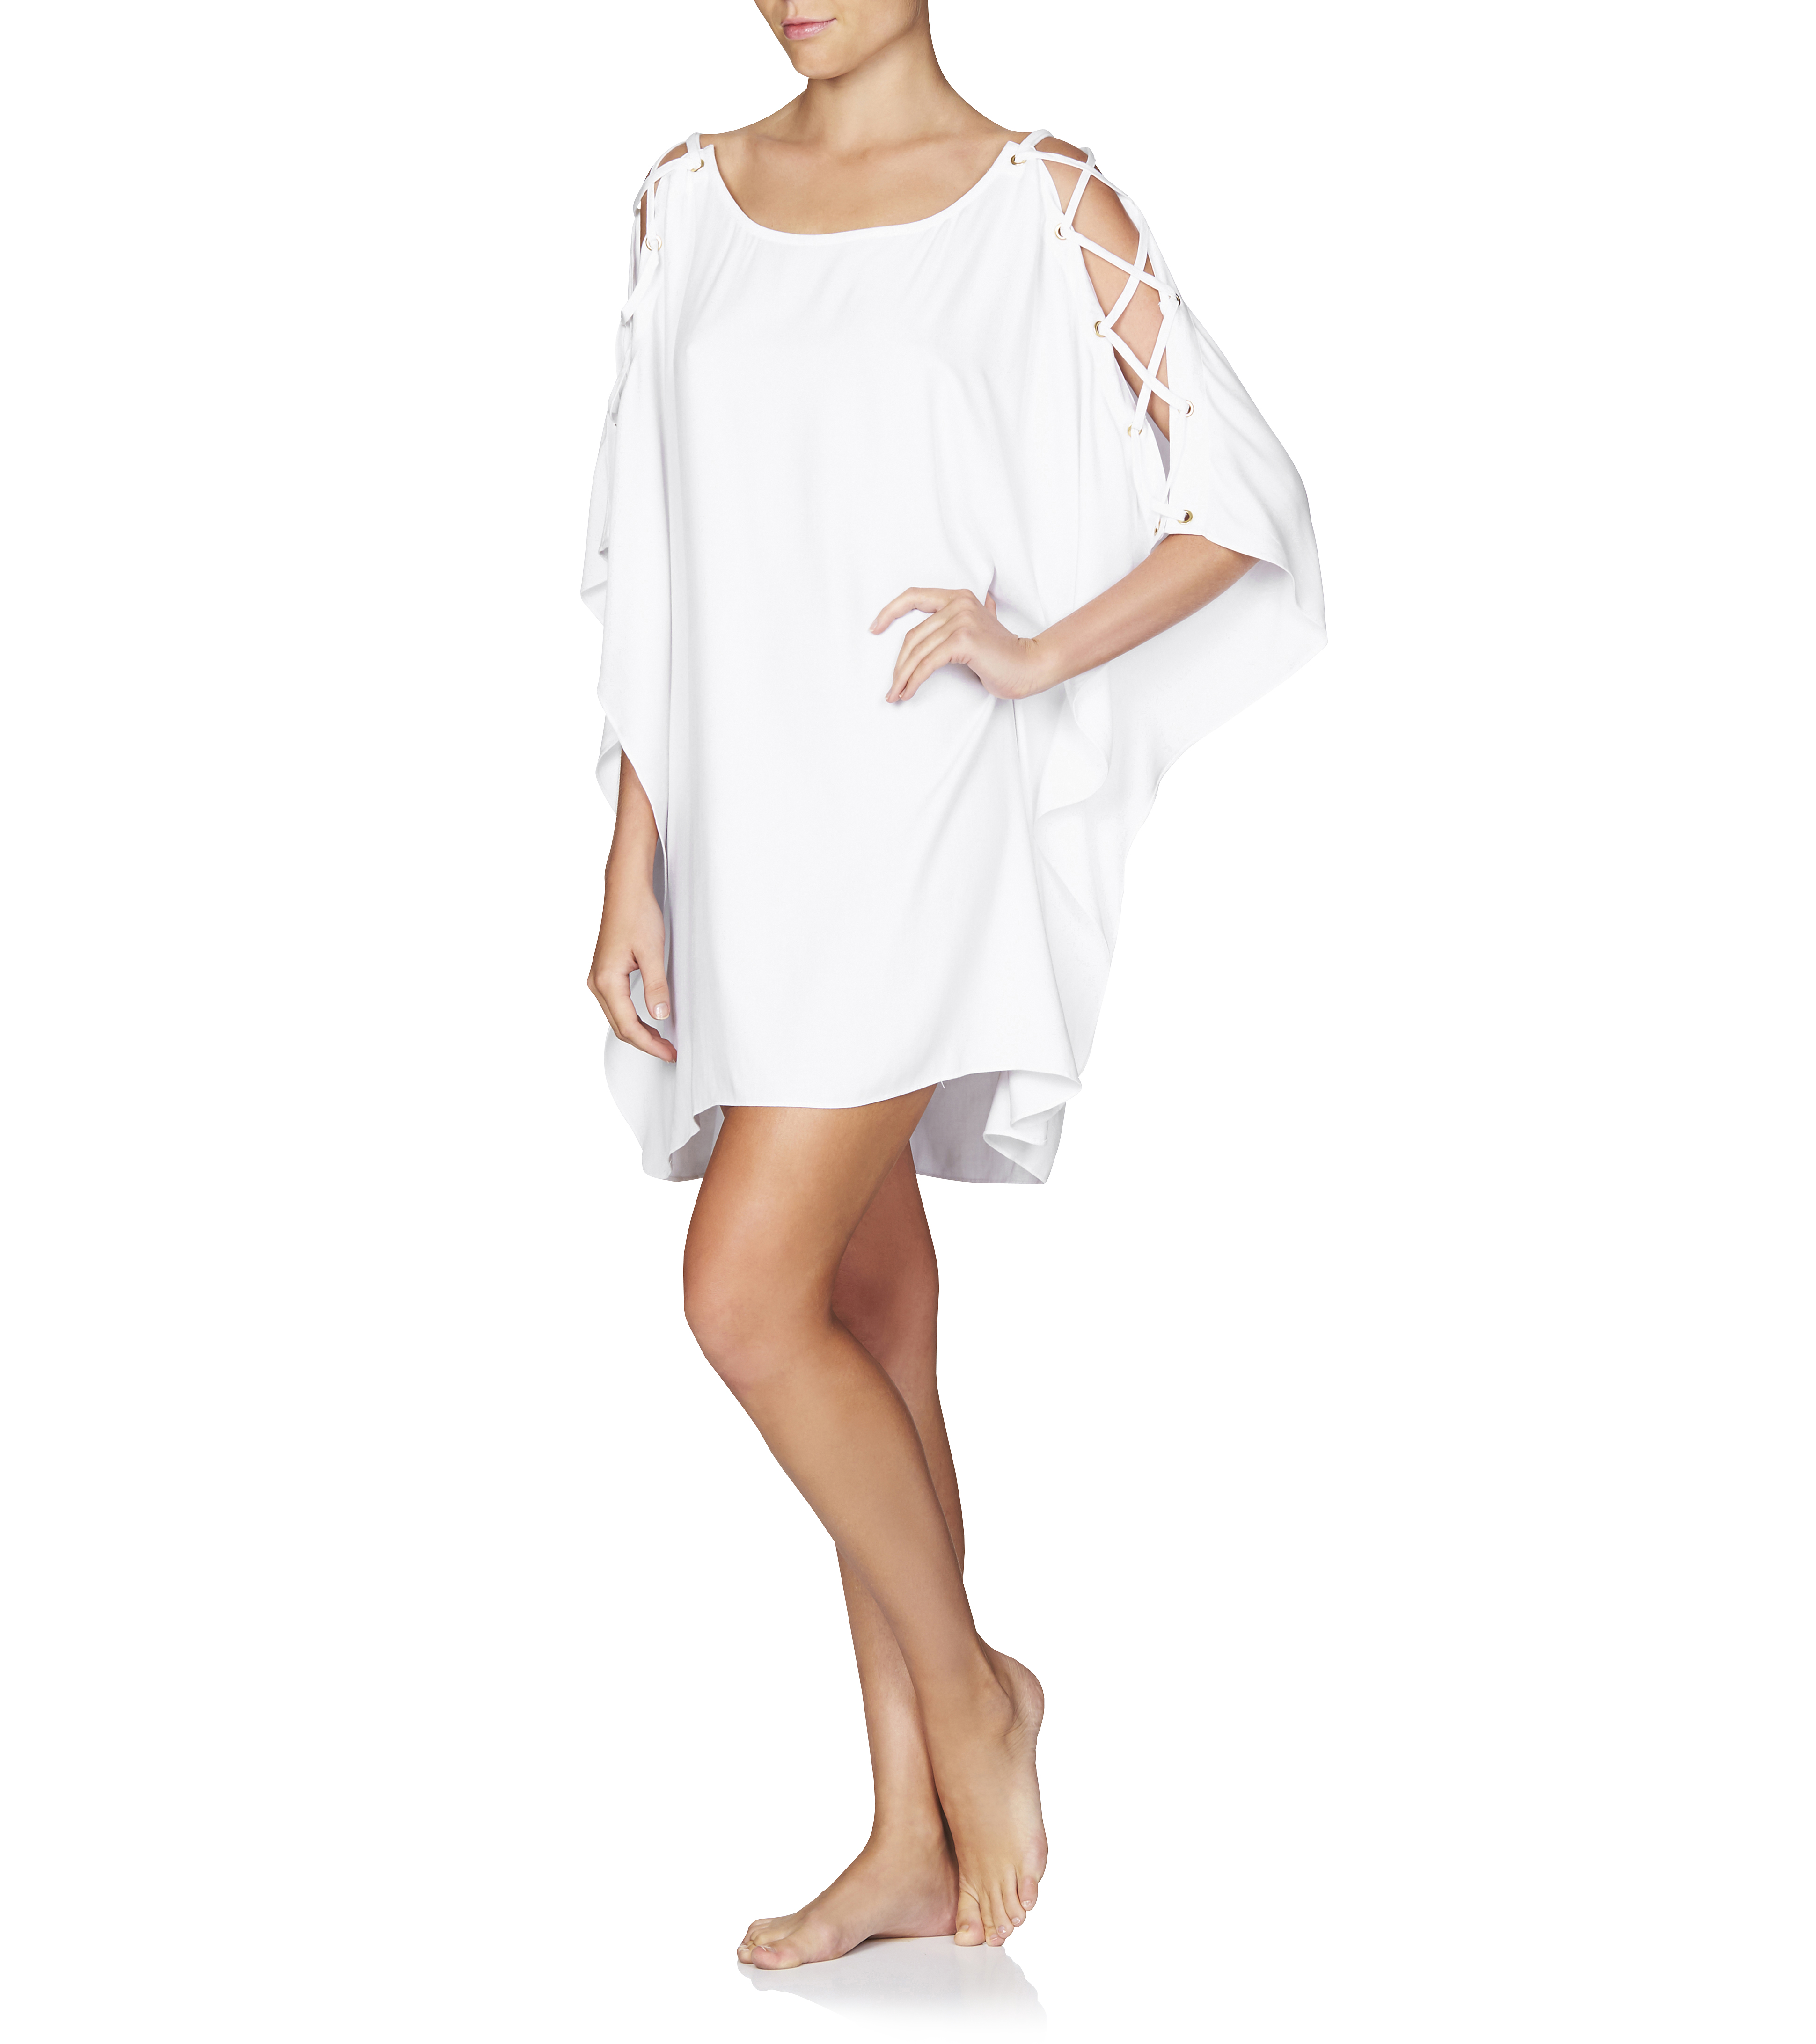 Coco Azure Short Coverup